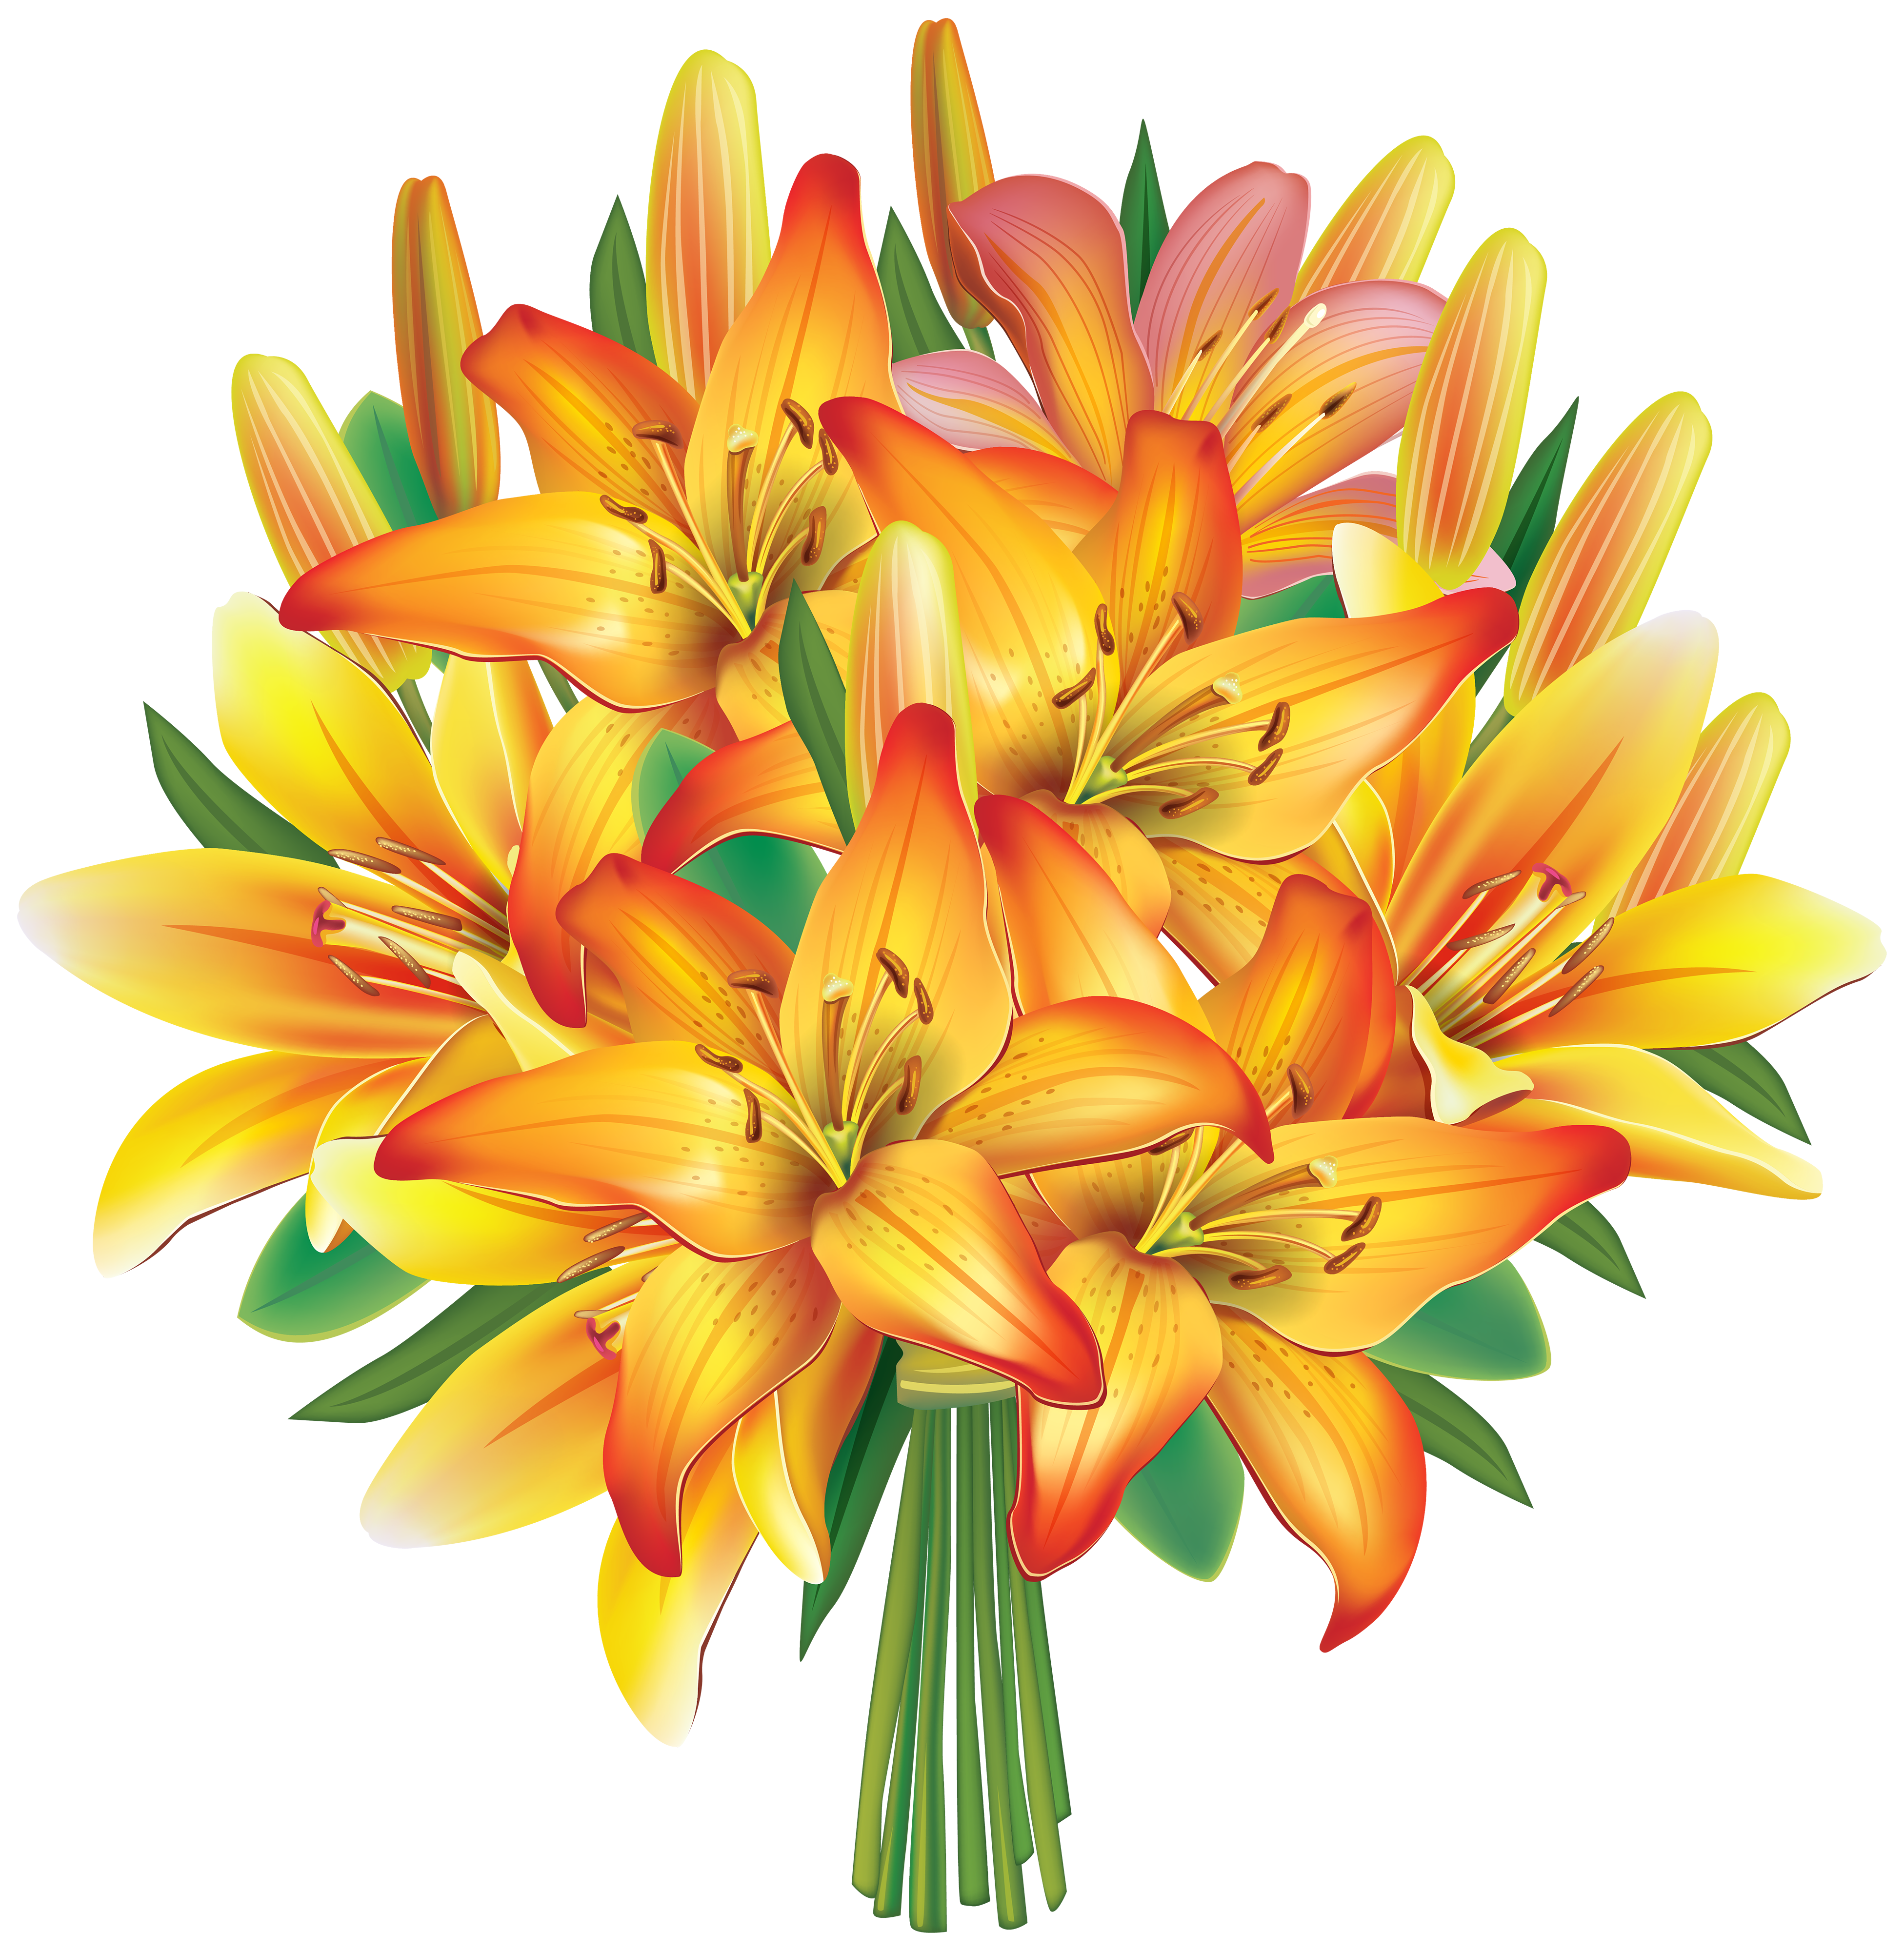 banner transparent library Yellow lilies flowers png. Lily clipart flower bouquet.